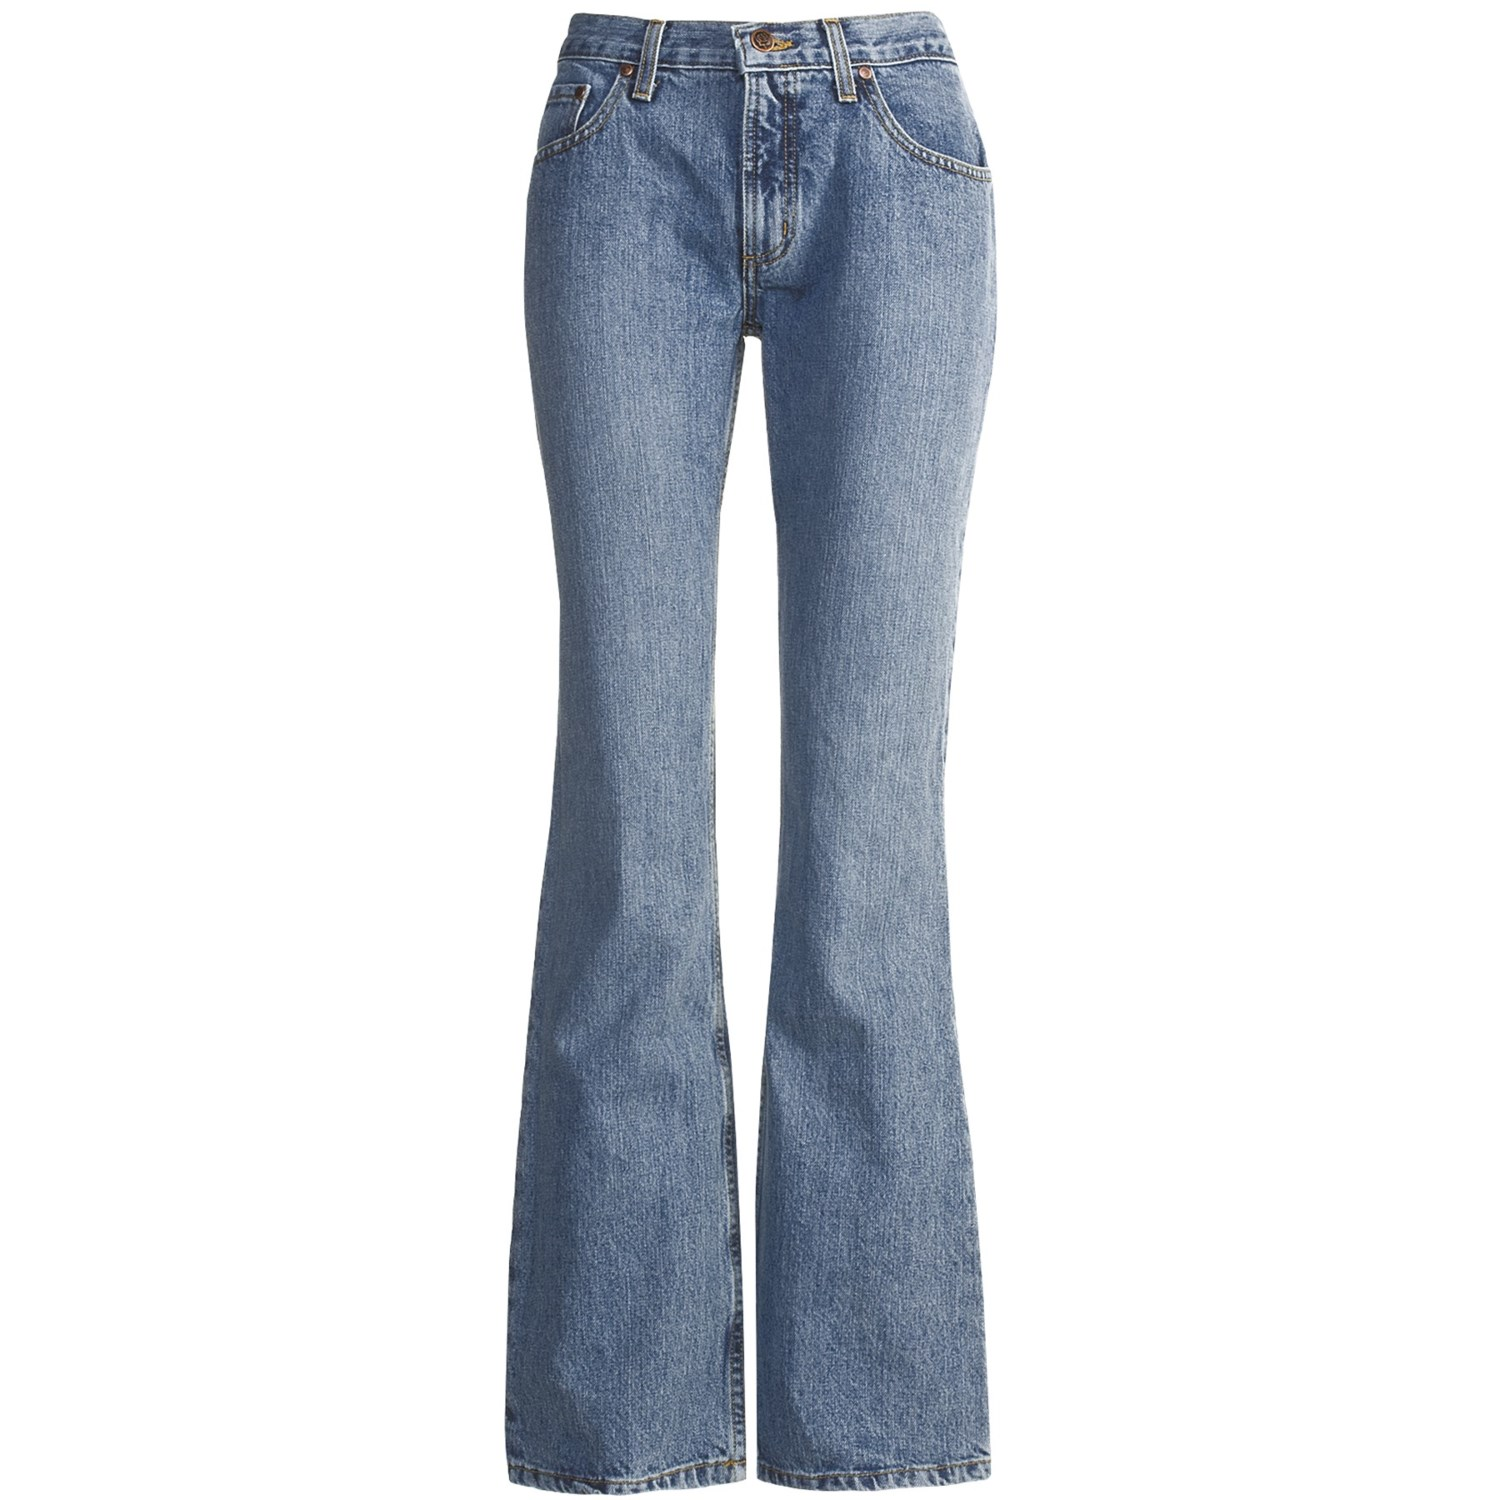 Cruel Girl Dakota Jeans Bootcut Relaxed Fit For Women